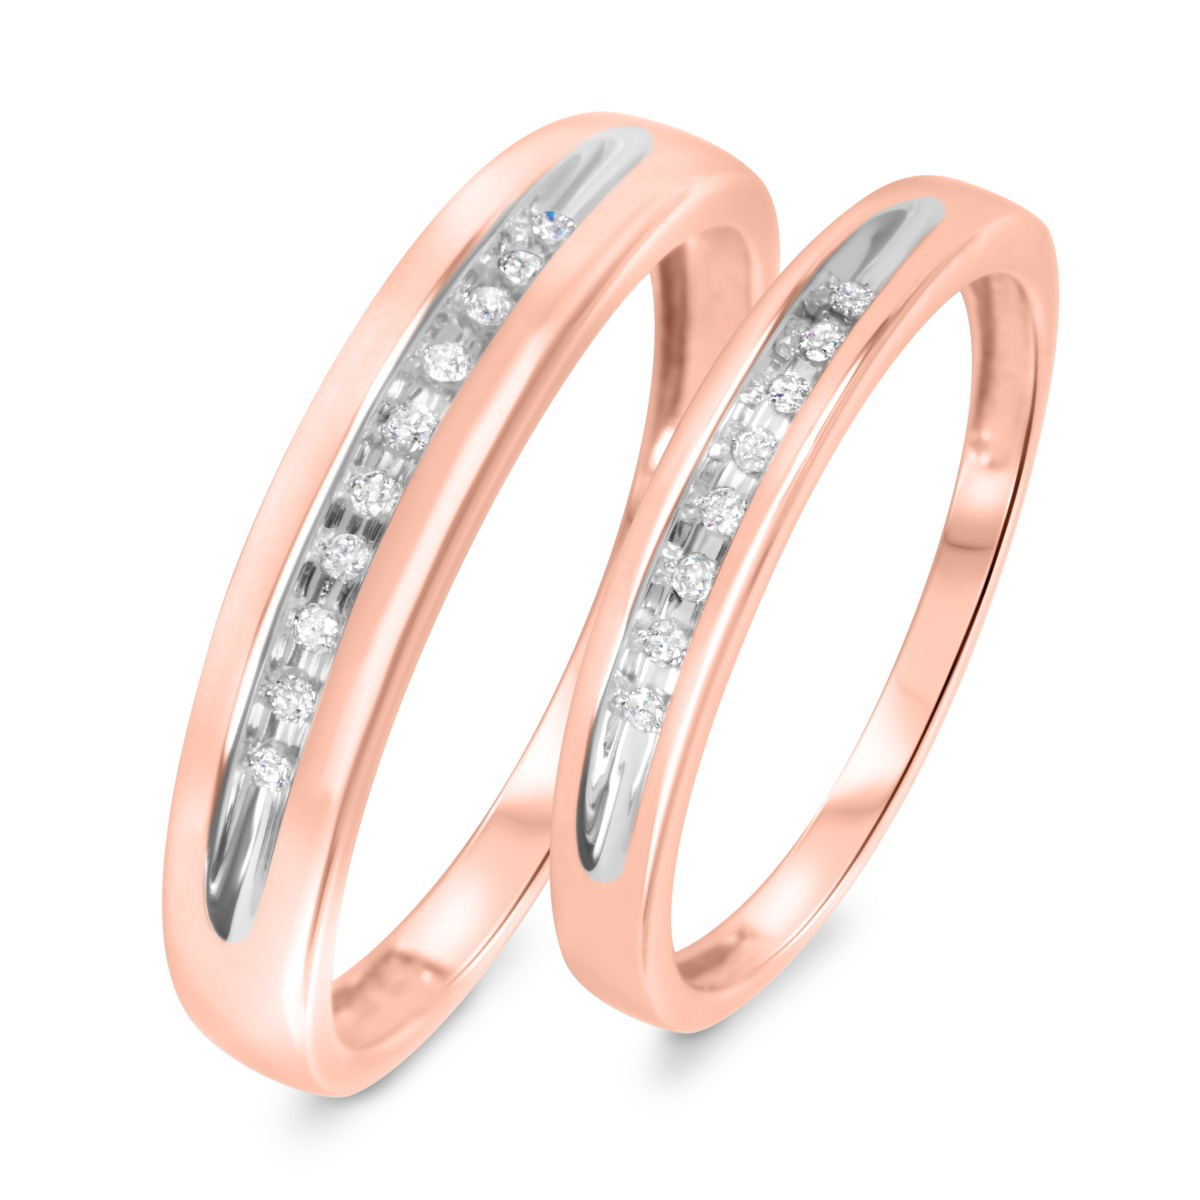 1/10 Carat T.W. Diamond His And Hers Wedding Rings 10K Rose Gold